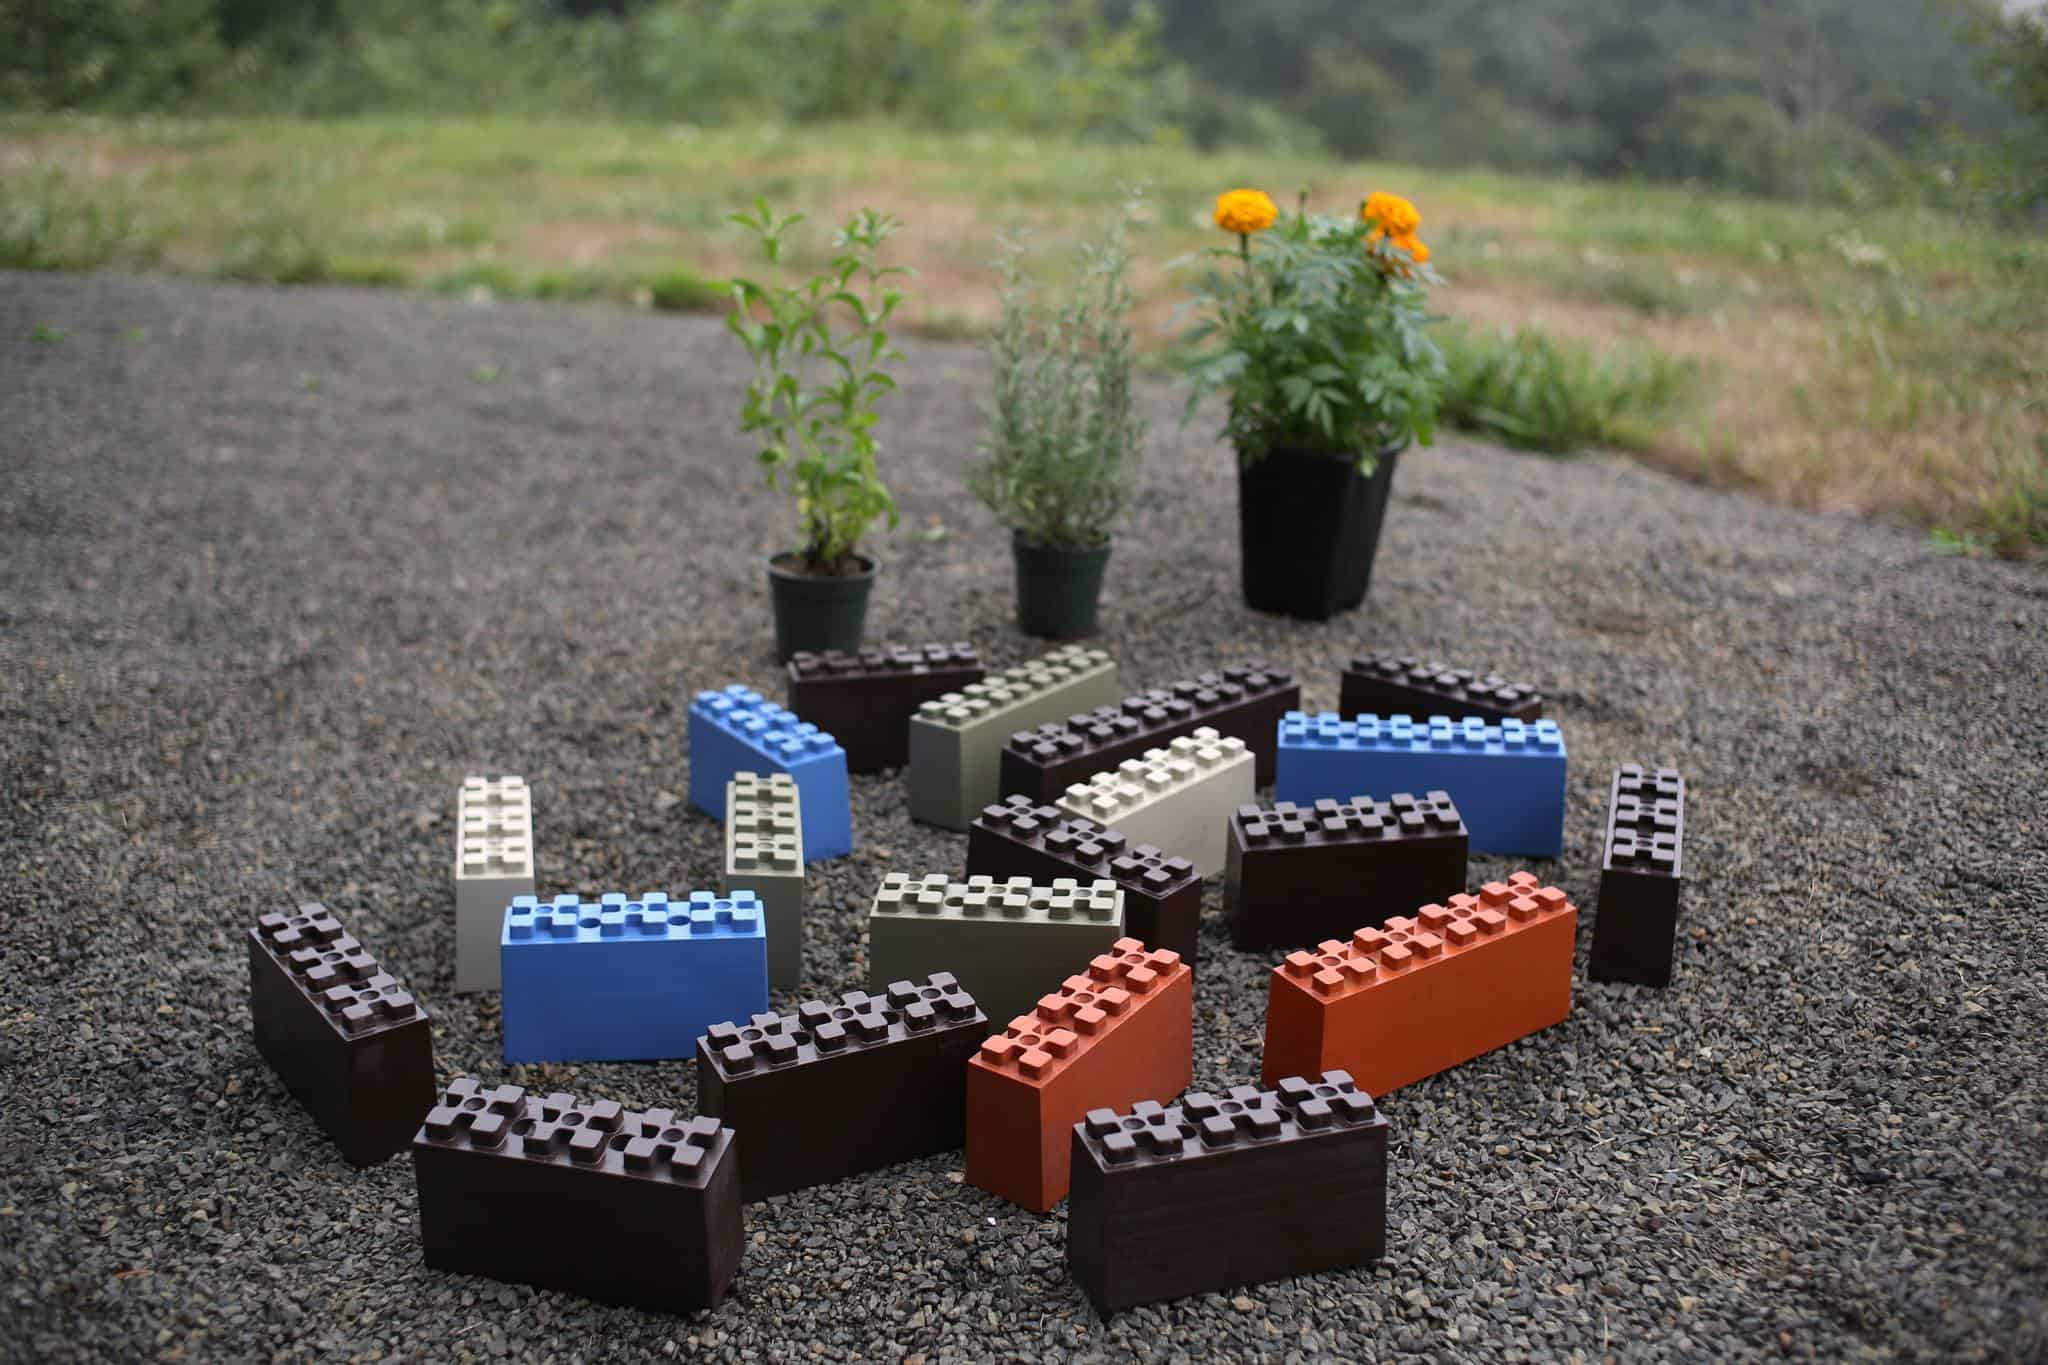 TogetherFarm Blocks Build Garden like Lego